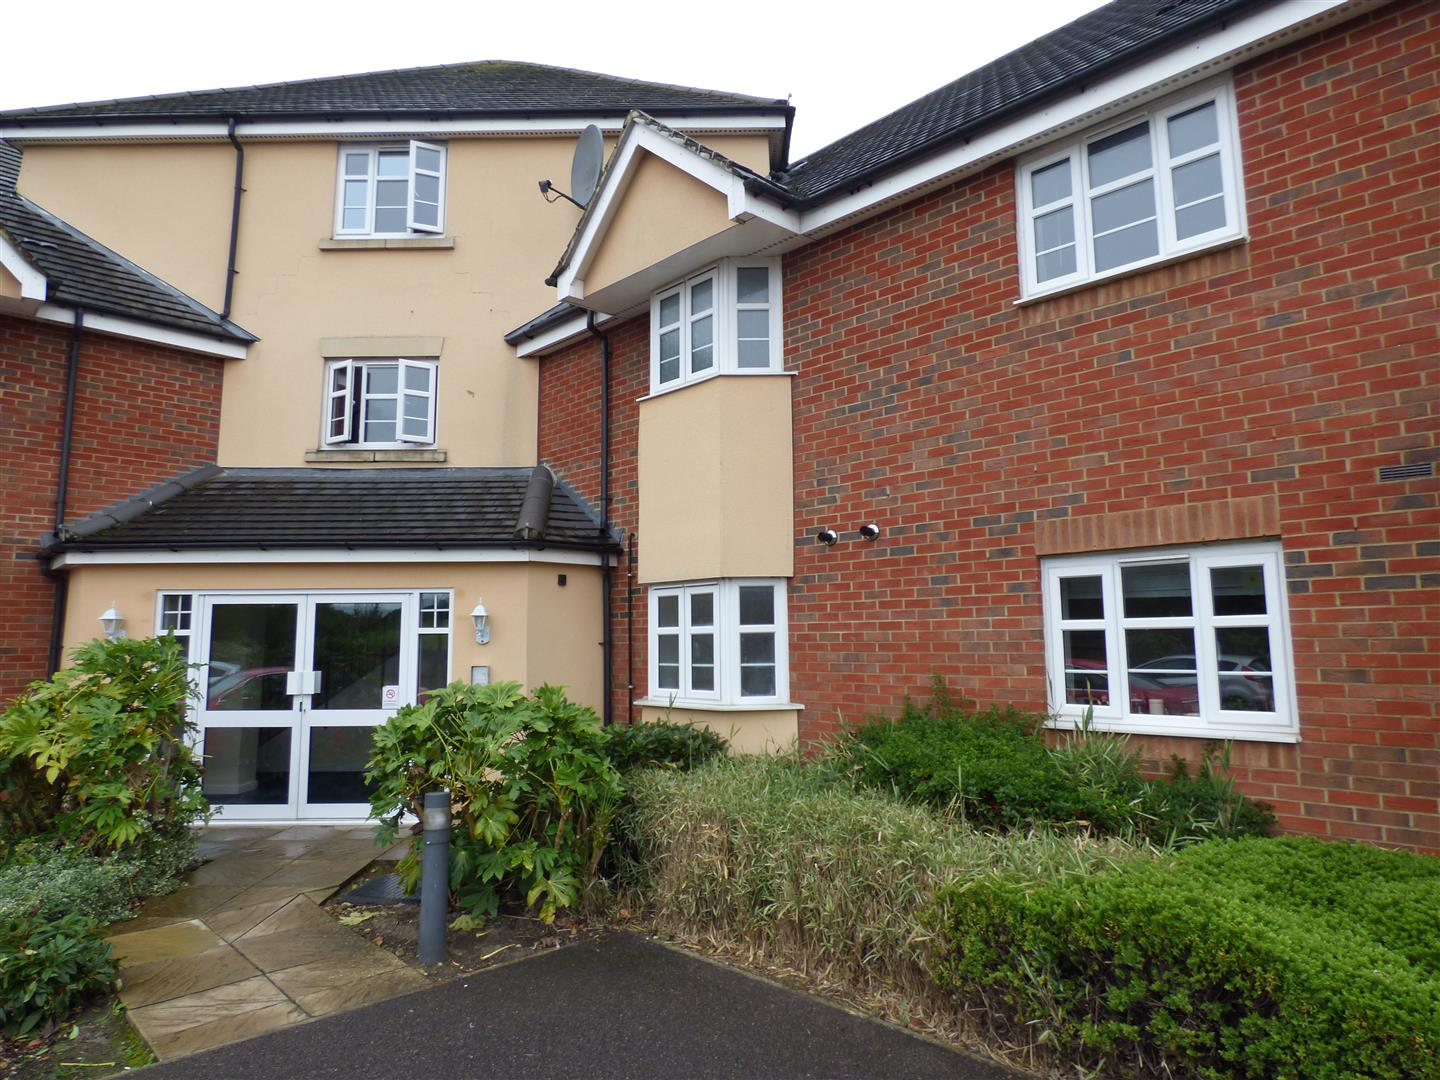 2 Bedrooms Flat for sale in Peppercorn Way, Dunstable